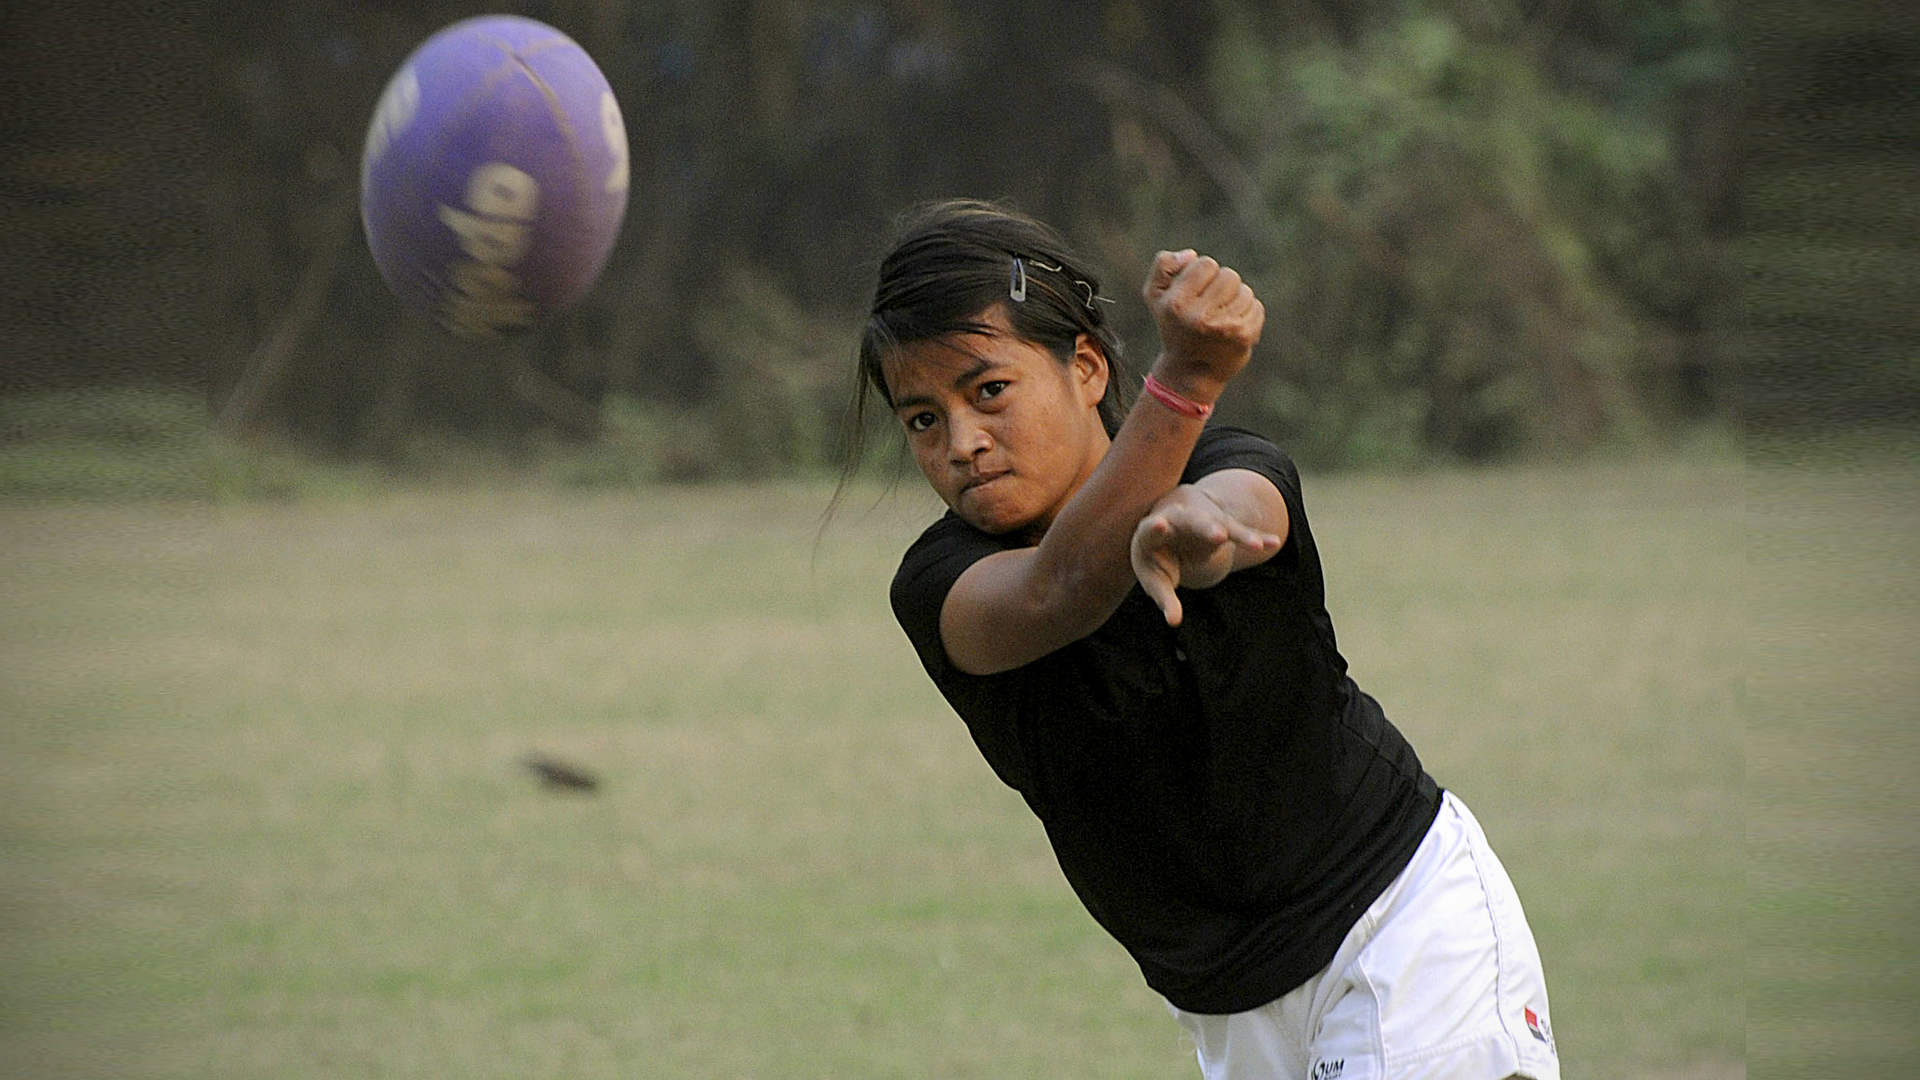 Scrum And Join Us: Women's Rugby Star Is Sport's New Poster Girl